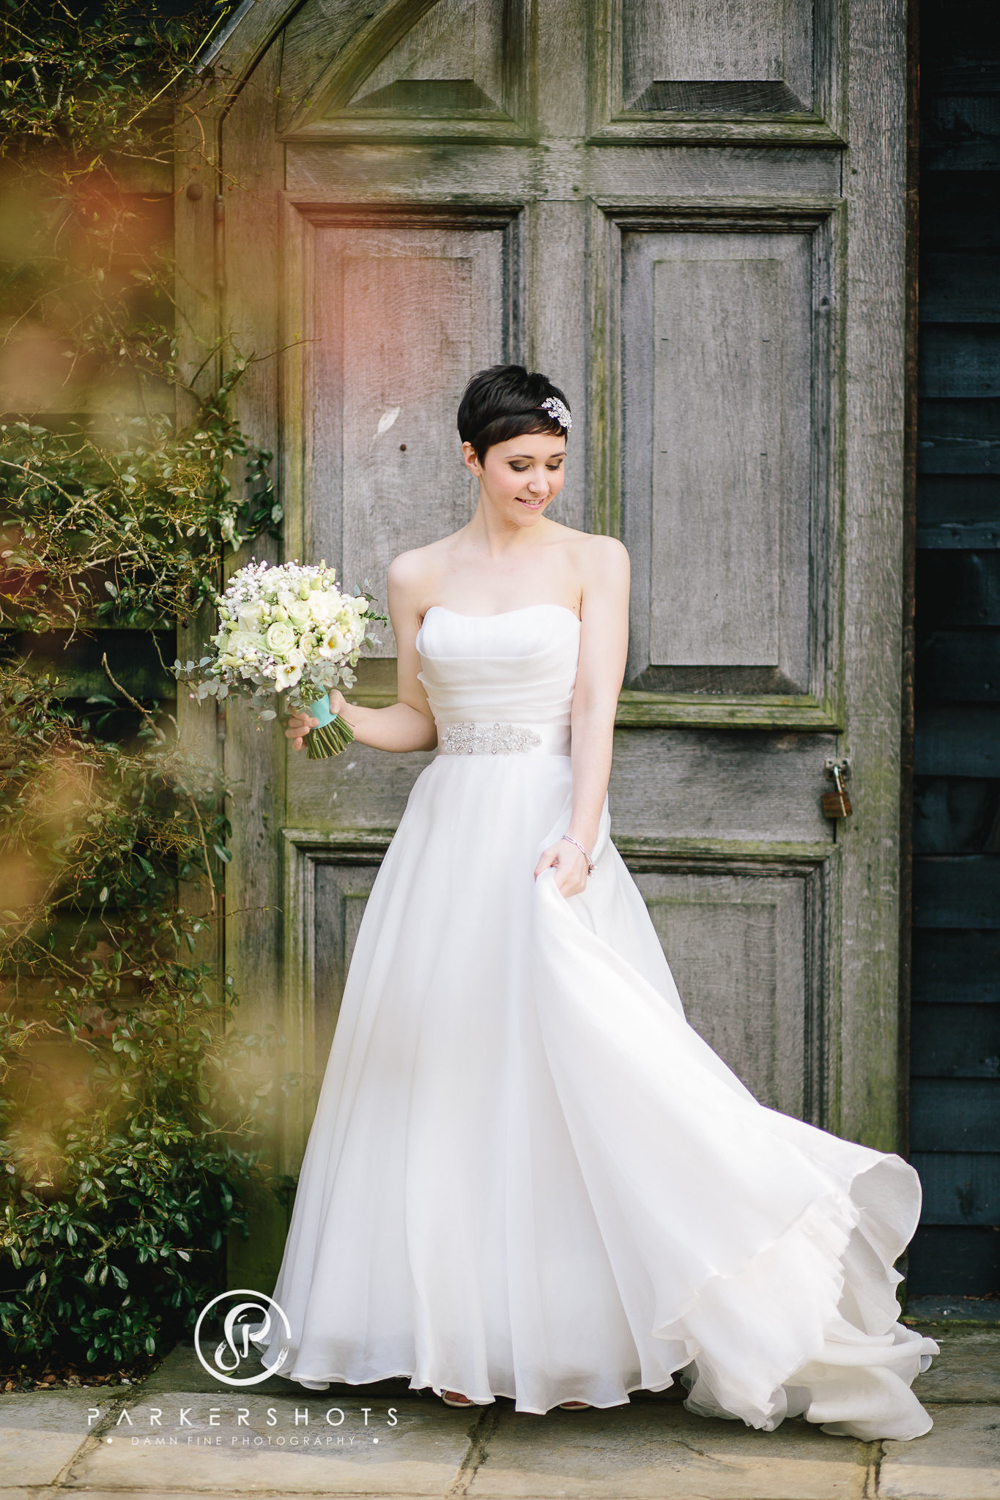 A Rustic Barn Wedding in Kent with a Gillian Million Wedding Gown ...